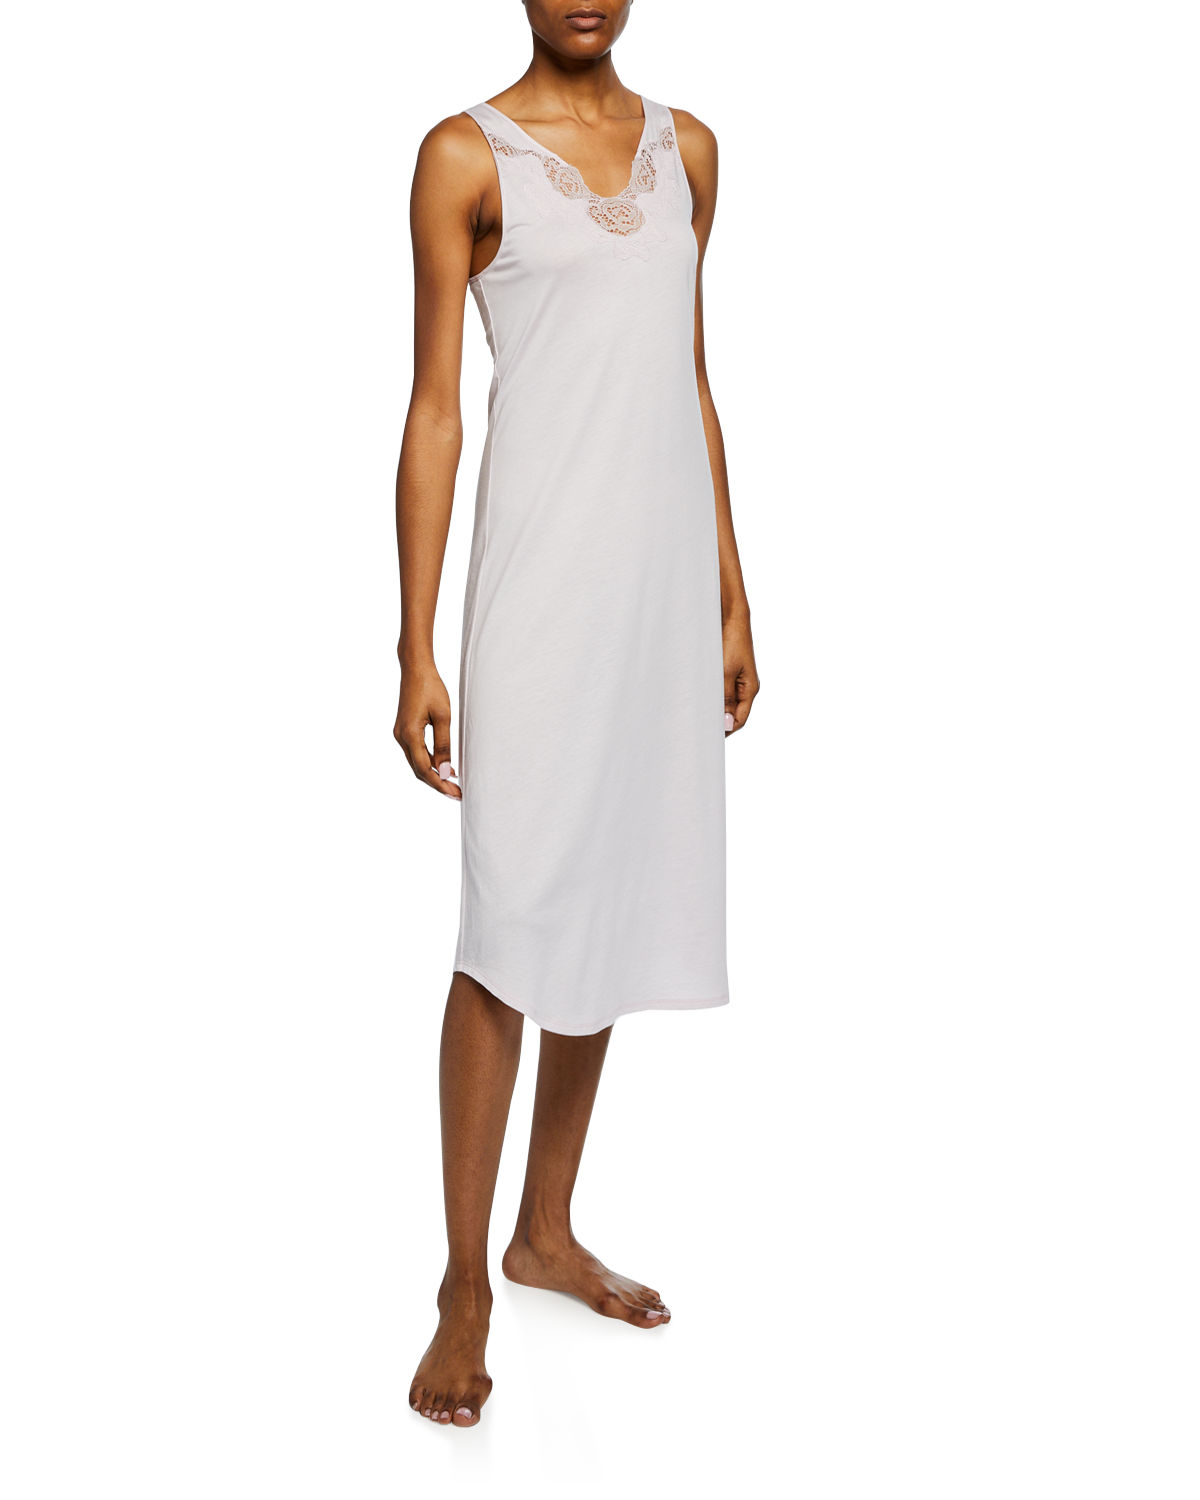 Natori Tops Fleur Floral-Embroidered Tank Nightgown, LIGHT PINK